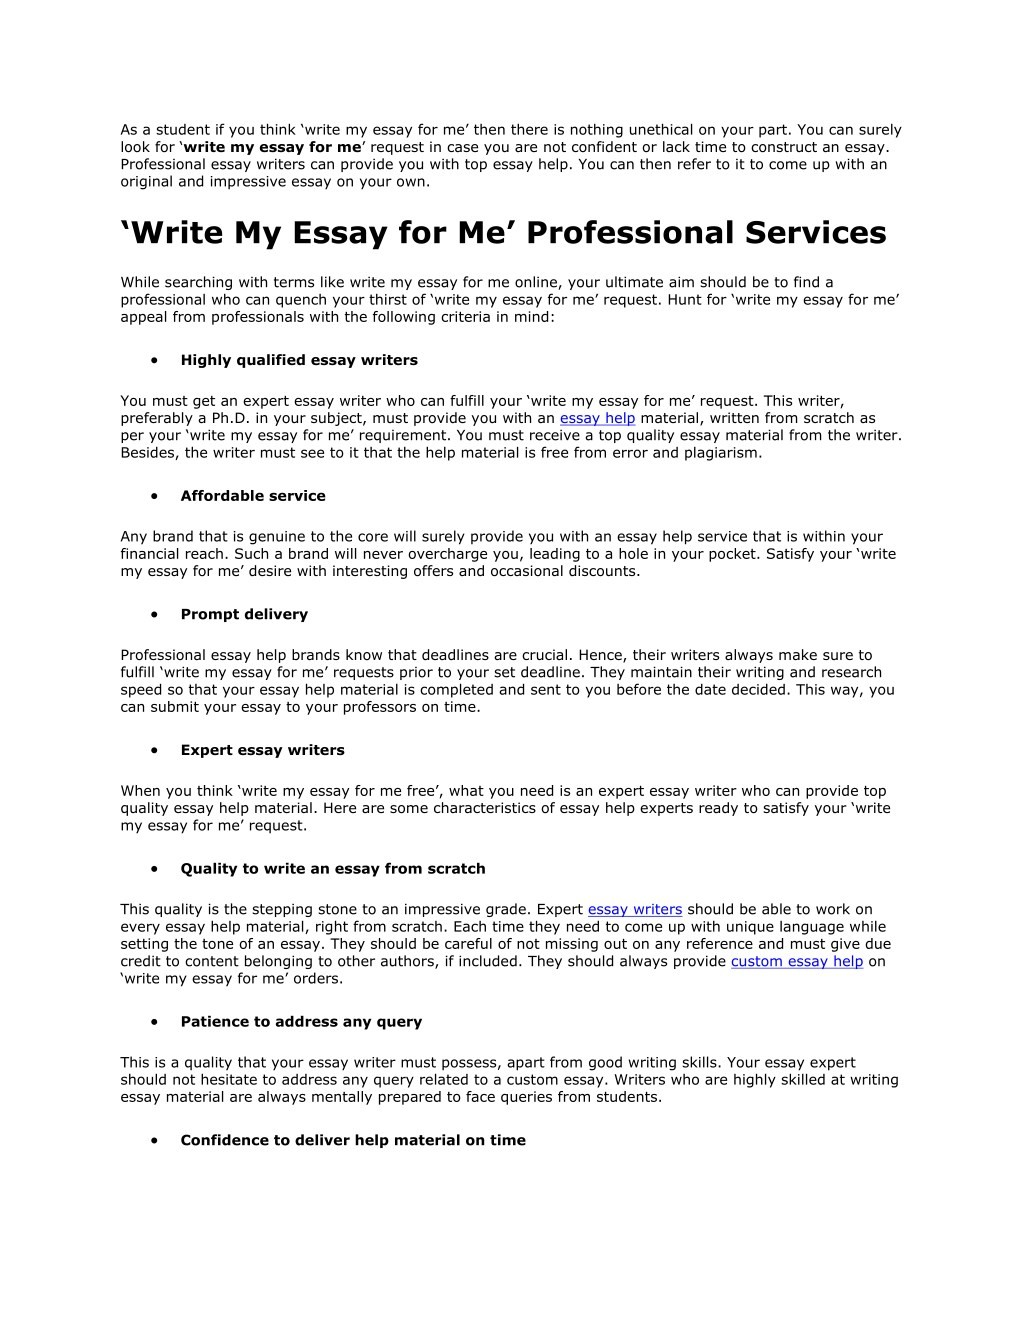 017 Write My Essay For Me Example As Student If You Think Surprising Please Generator Free Online Large